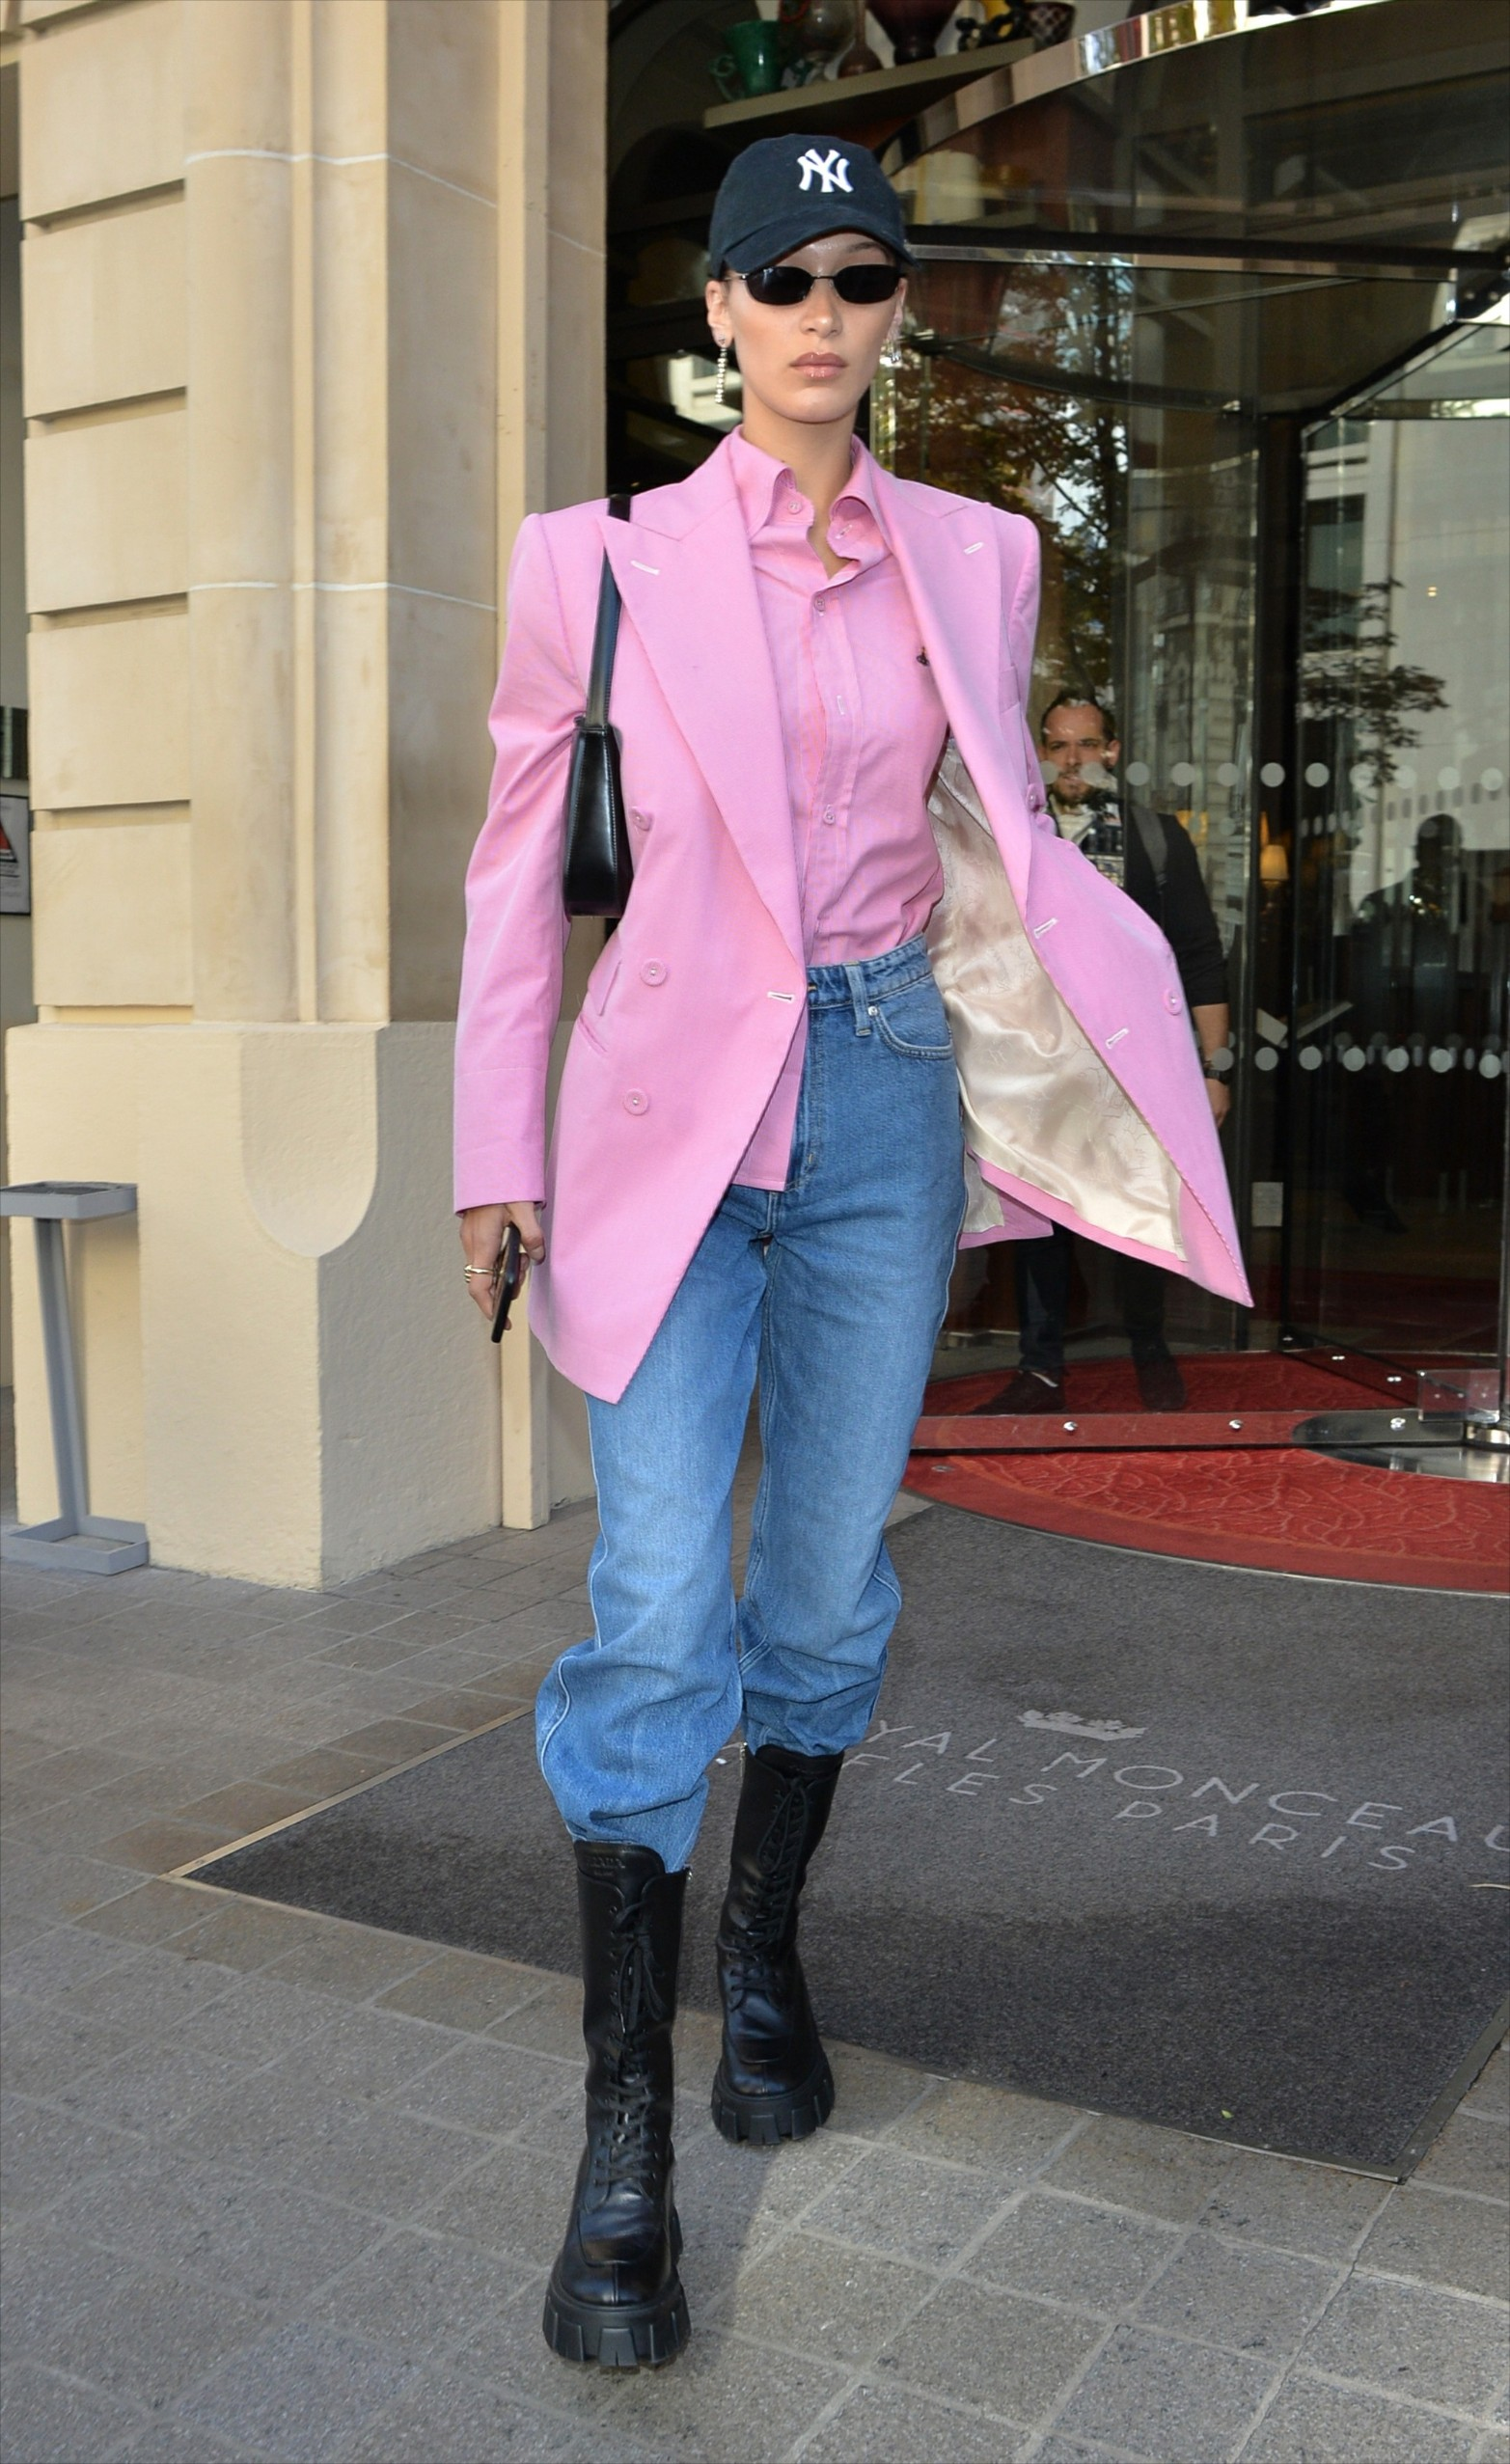 , Paris, France - 20190930 - Gigi and Bella Hadid seen out and about, both sporting brightly colored coats during Paris fashion week.  -PICTURED: Bella Hadid -, Image: 474315723, License: Rights-managed, Restrictions: , Model Release: no, Credit line: INSTARimages.com / INSTAR Images / Profimedia